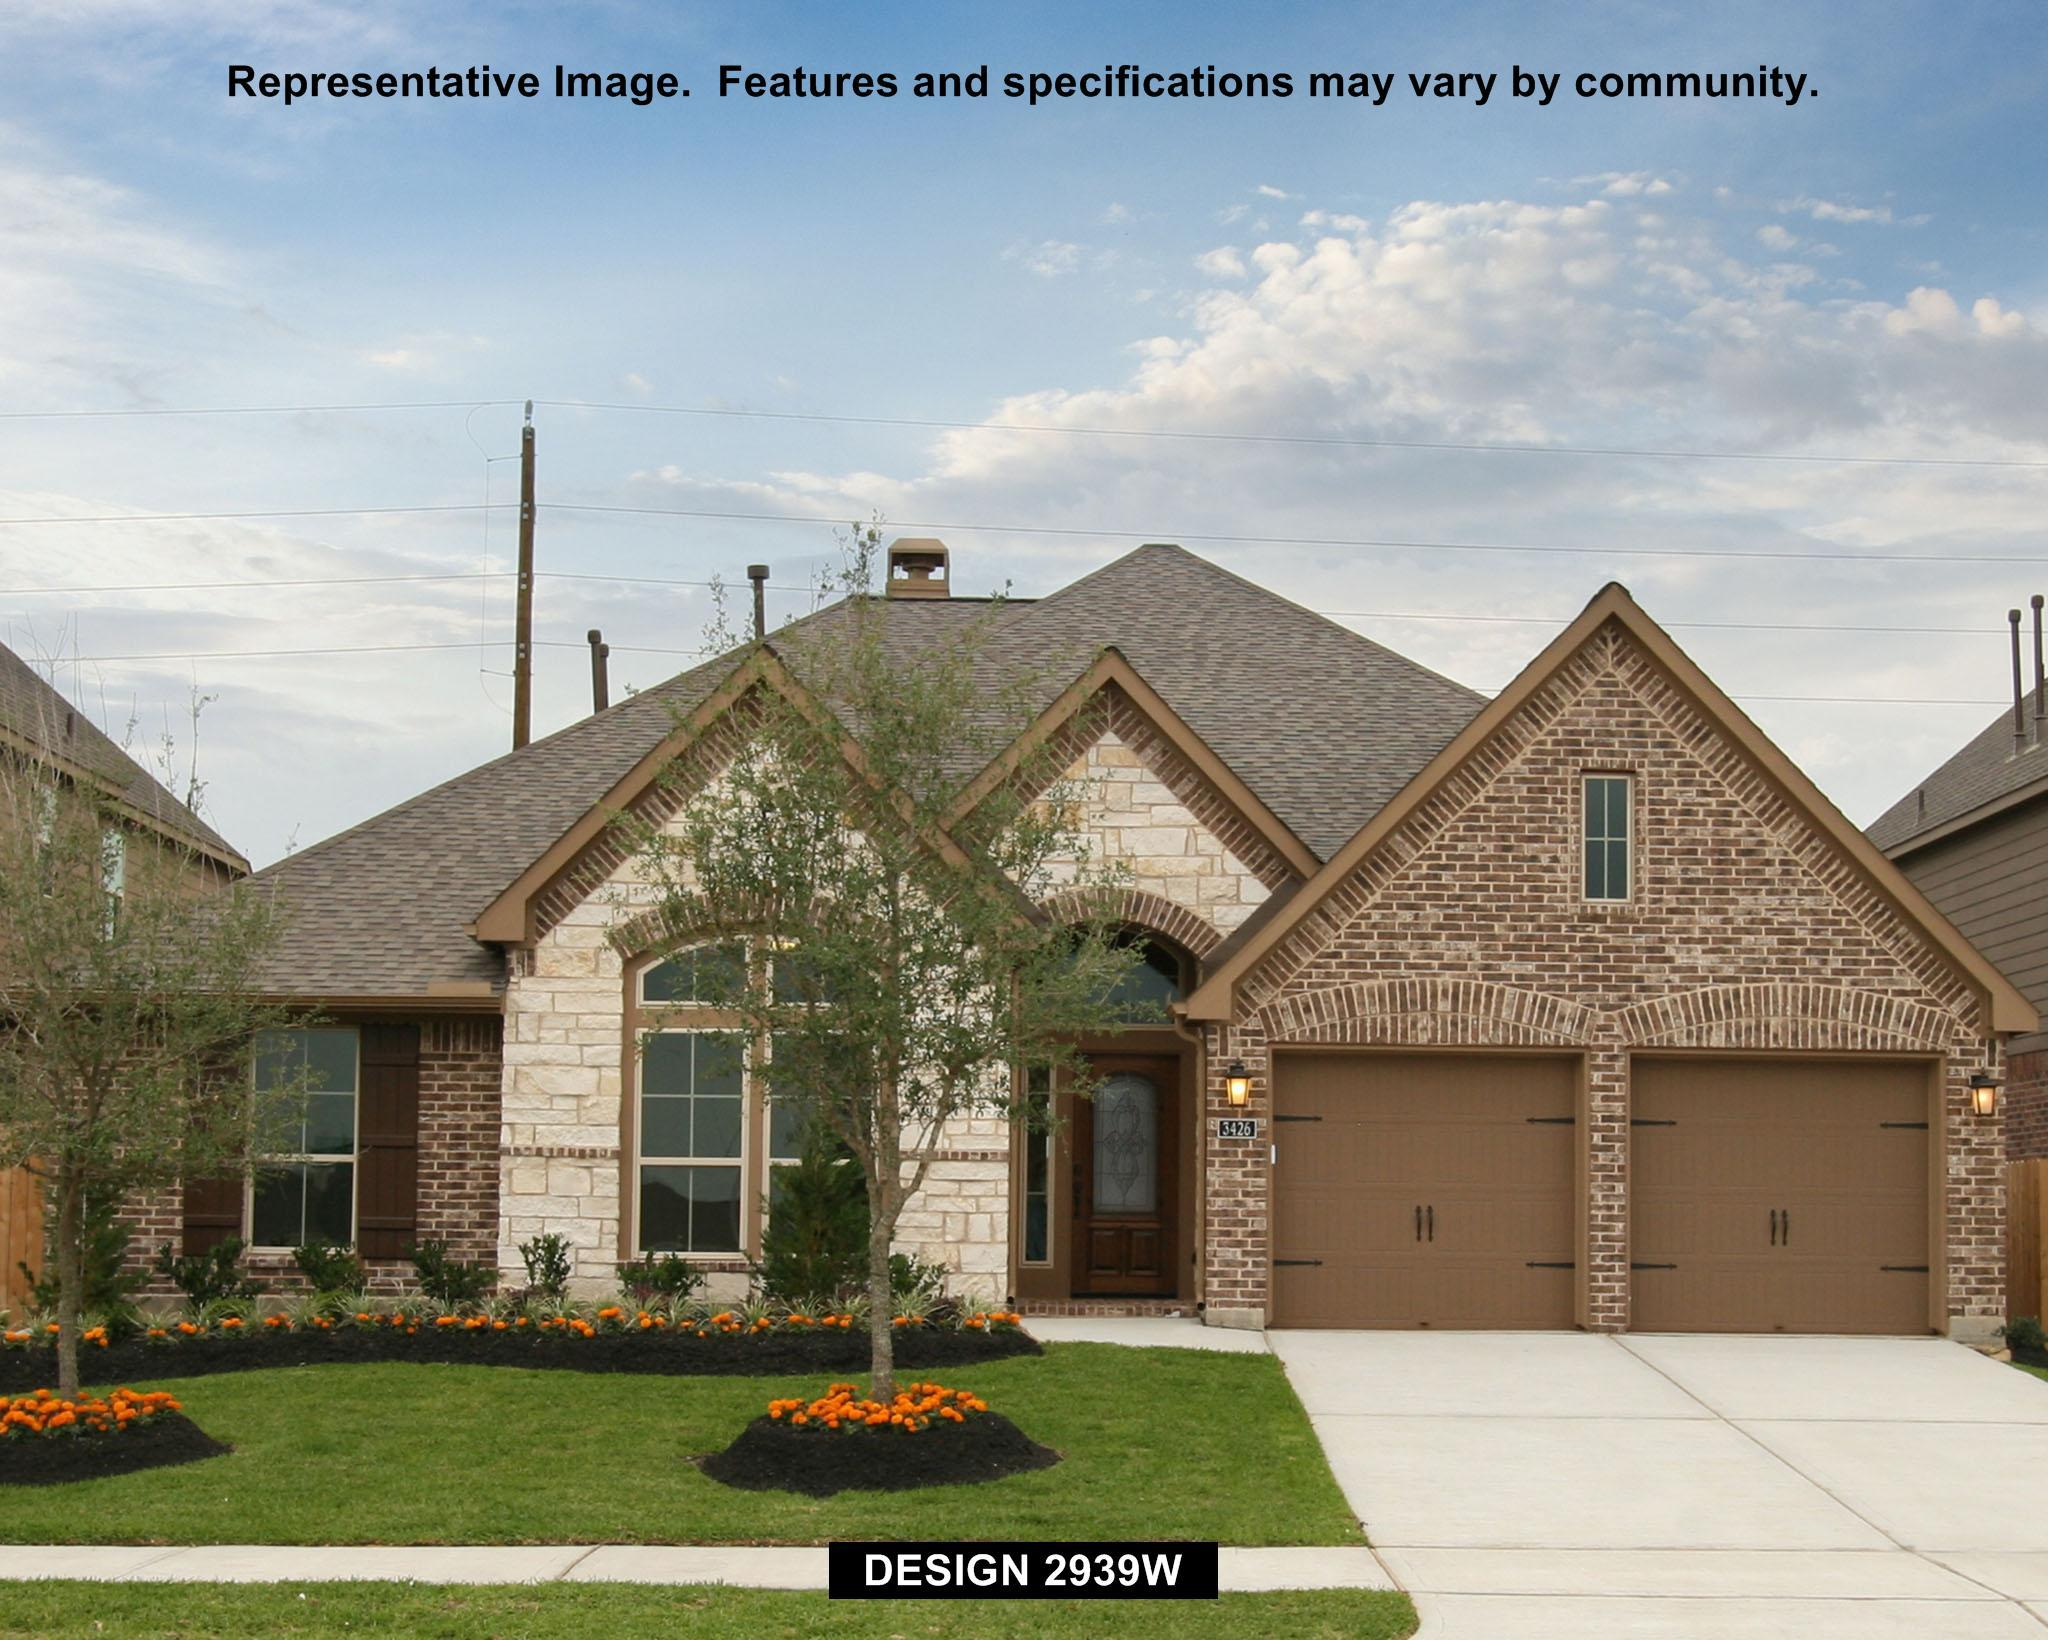 2939W - Firethorne: Firethorne 60': Katy, TX - Perry Homes